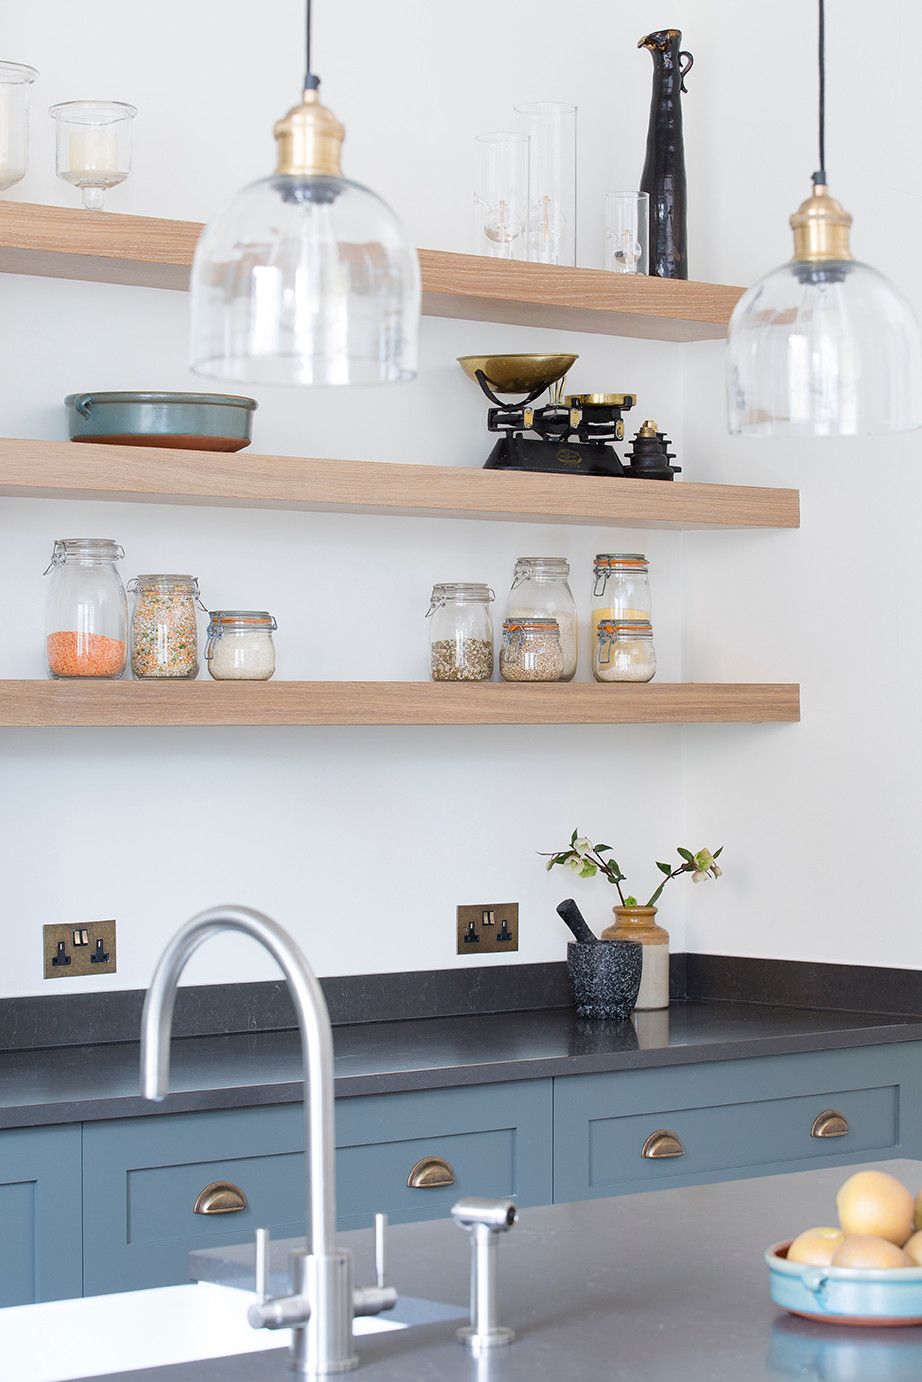 Blue kitchen units and open shelving